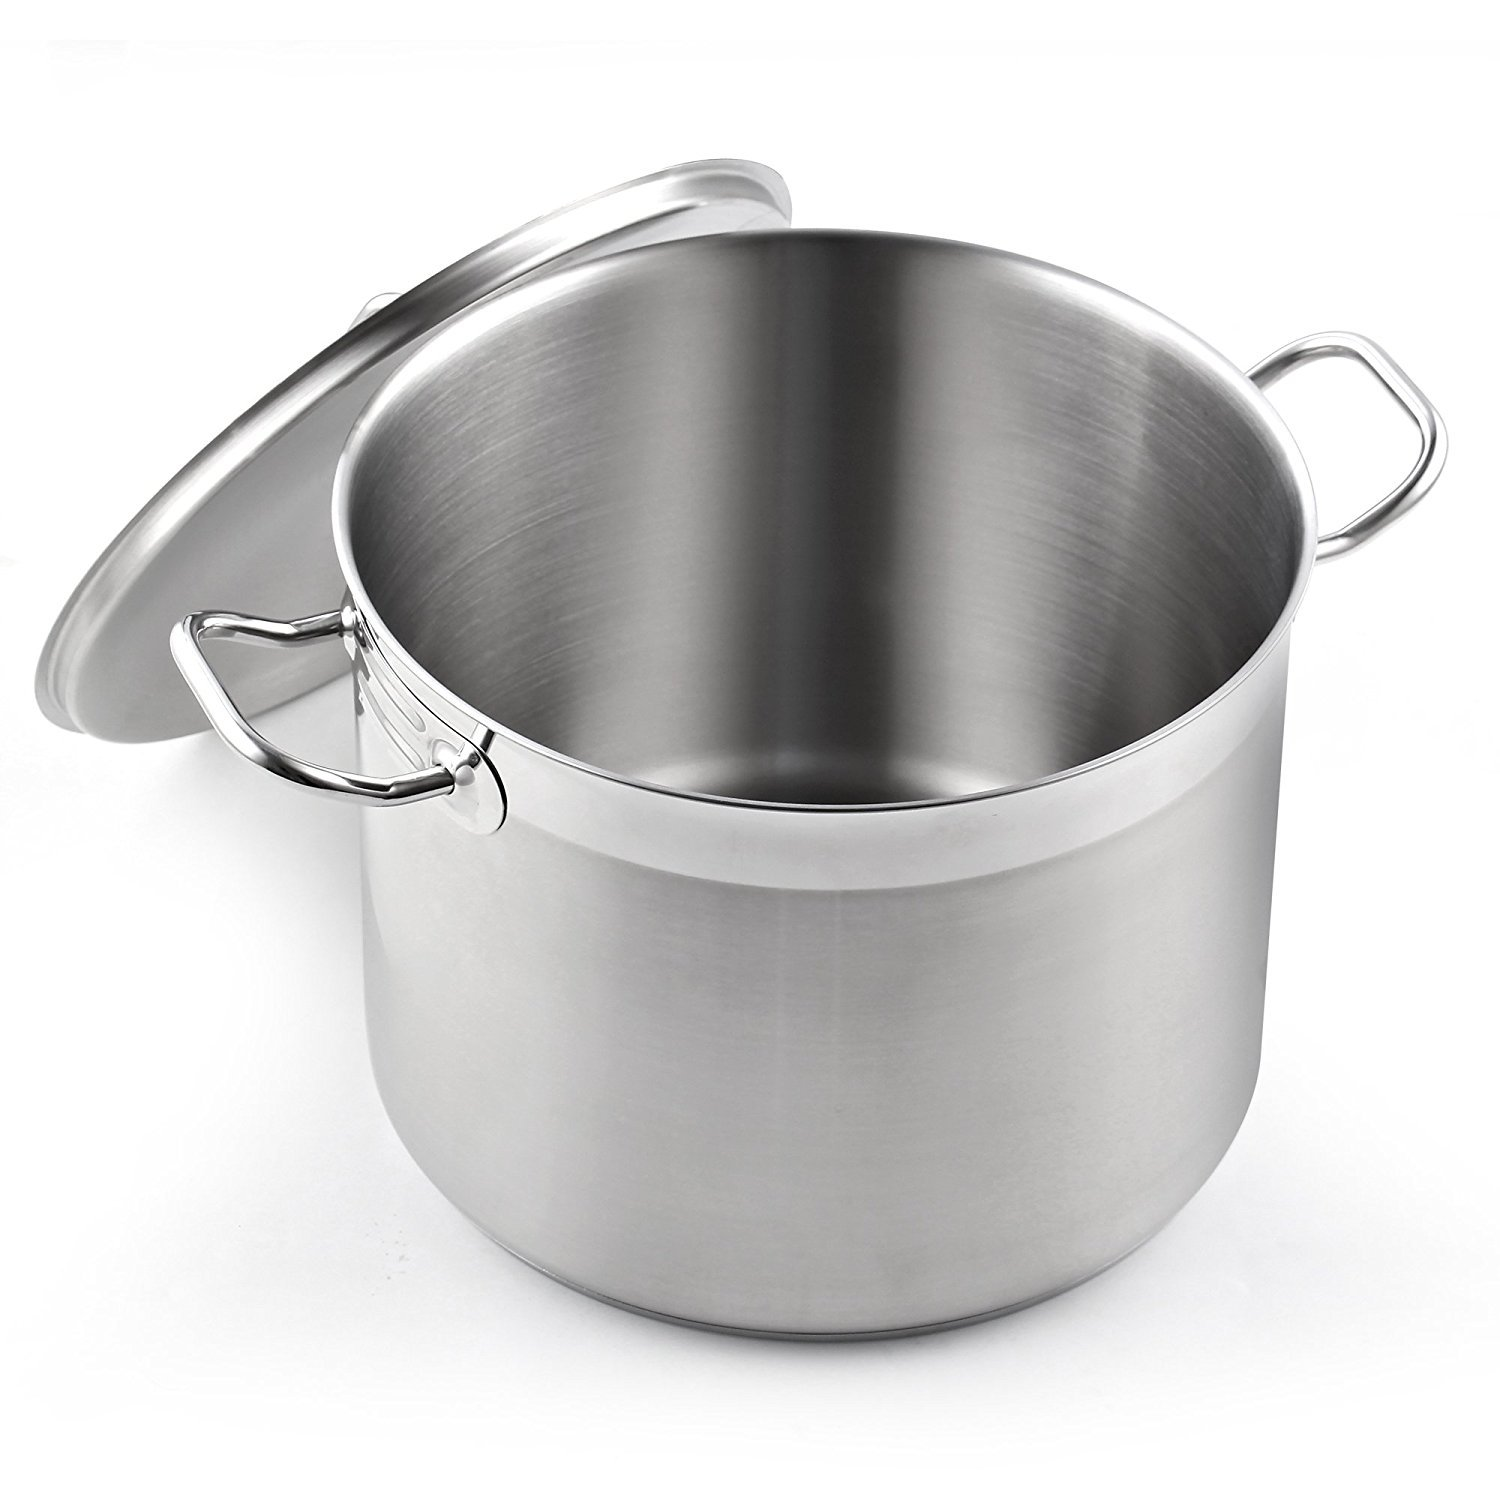 Cooks Standard 02584 Classic Stainless Steel Stockpot, 8-Quart, Silver by Cooks Standard